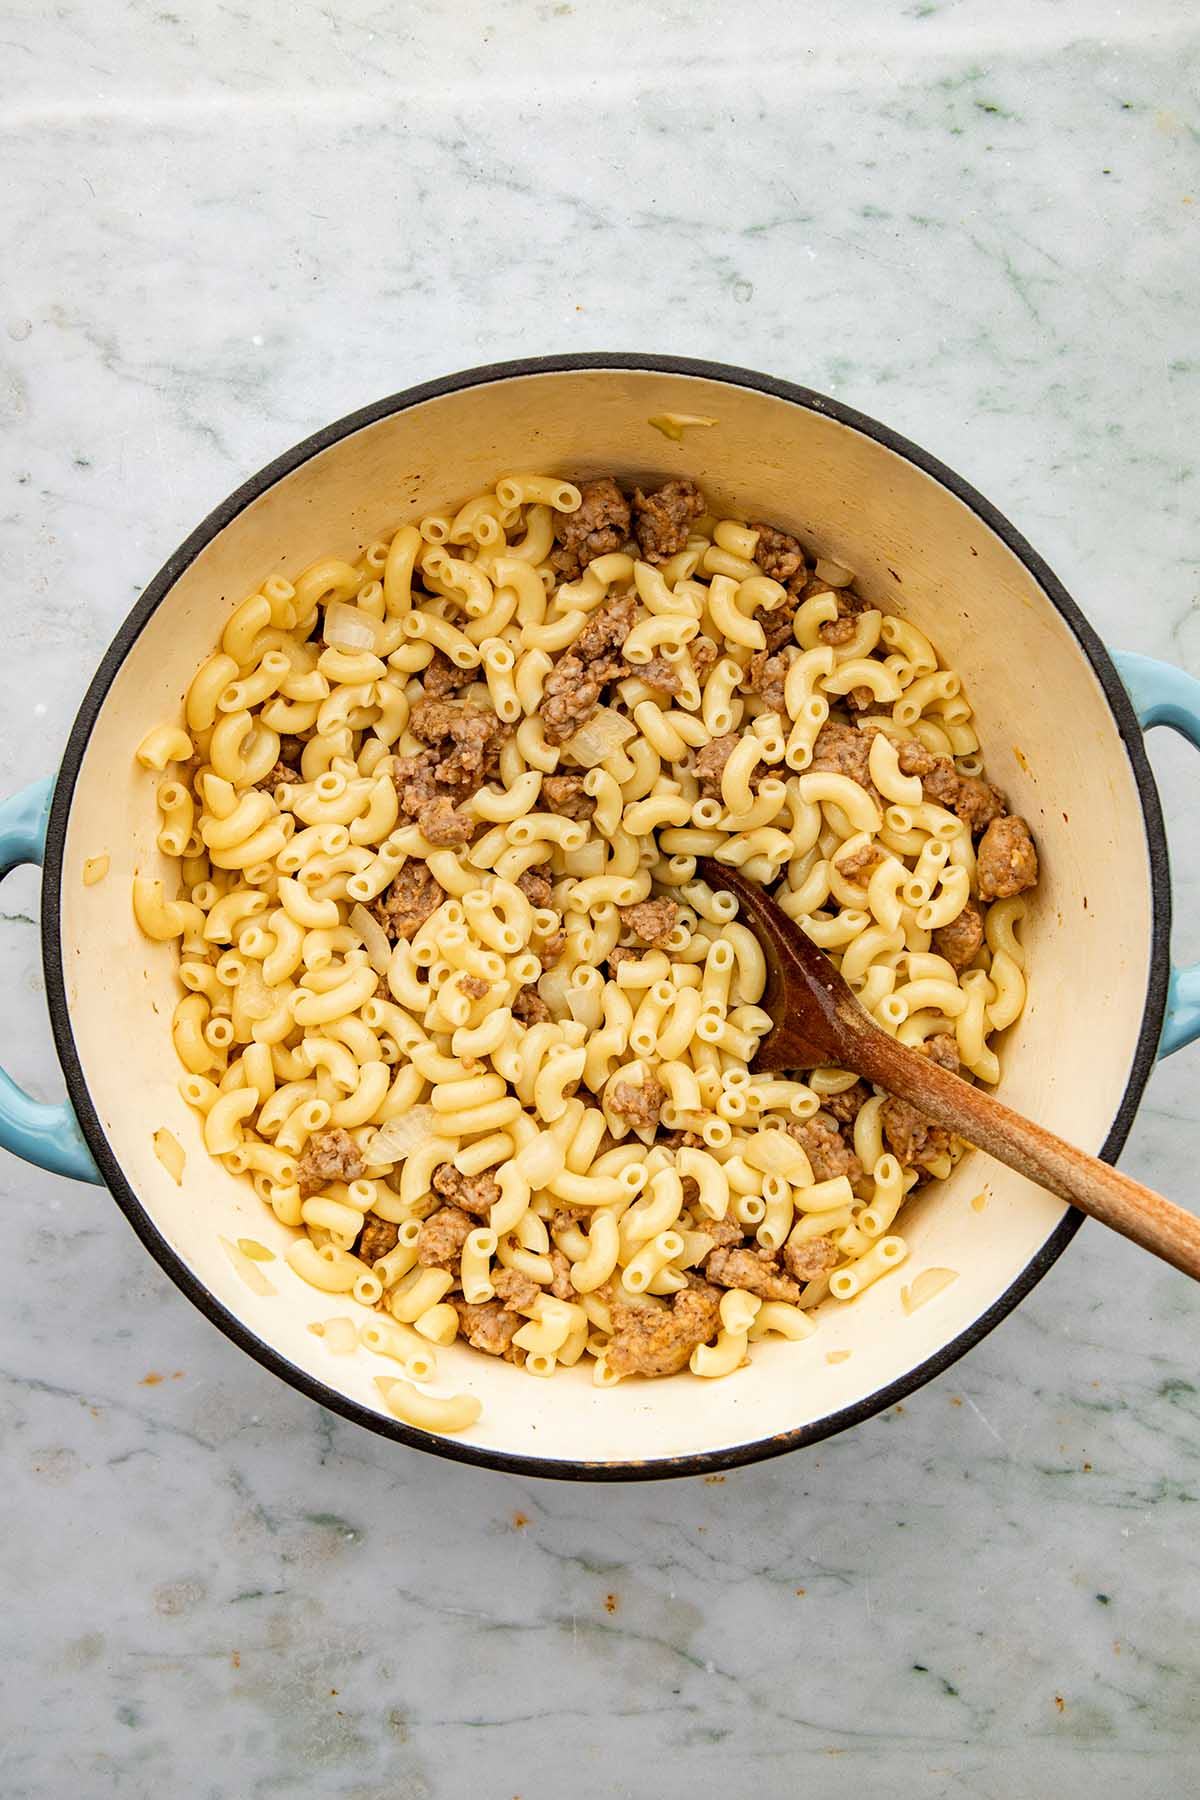 Cooked sausage and macaroni noodles stirred together in a pot.